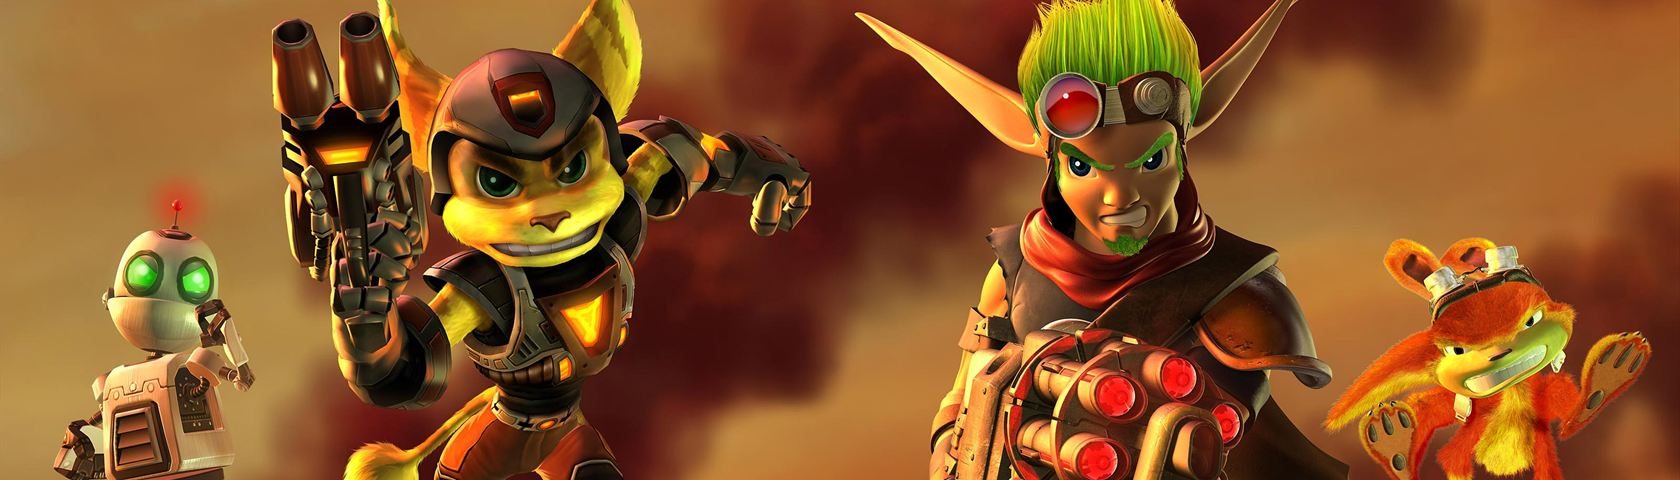 jak and daxter wallpaper 1920x1080